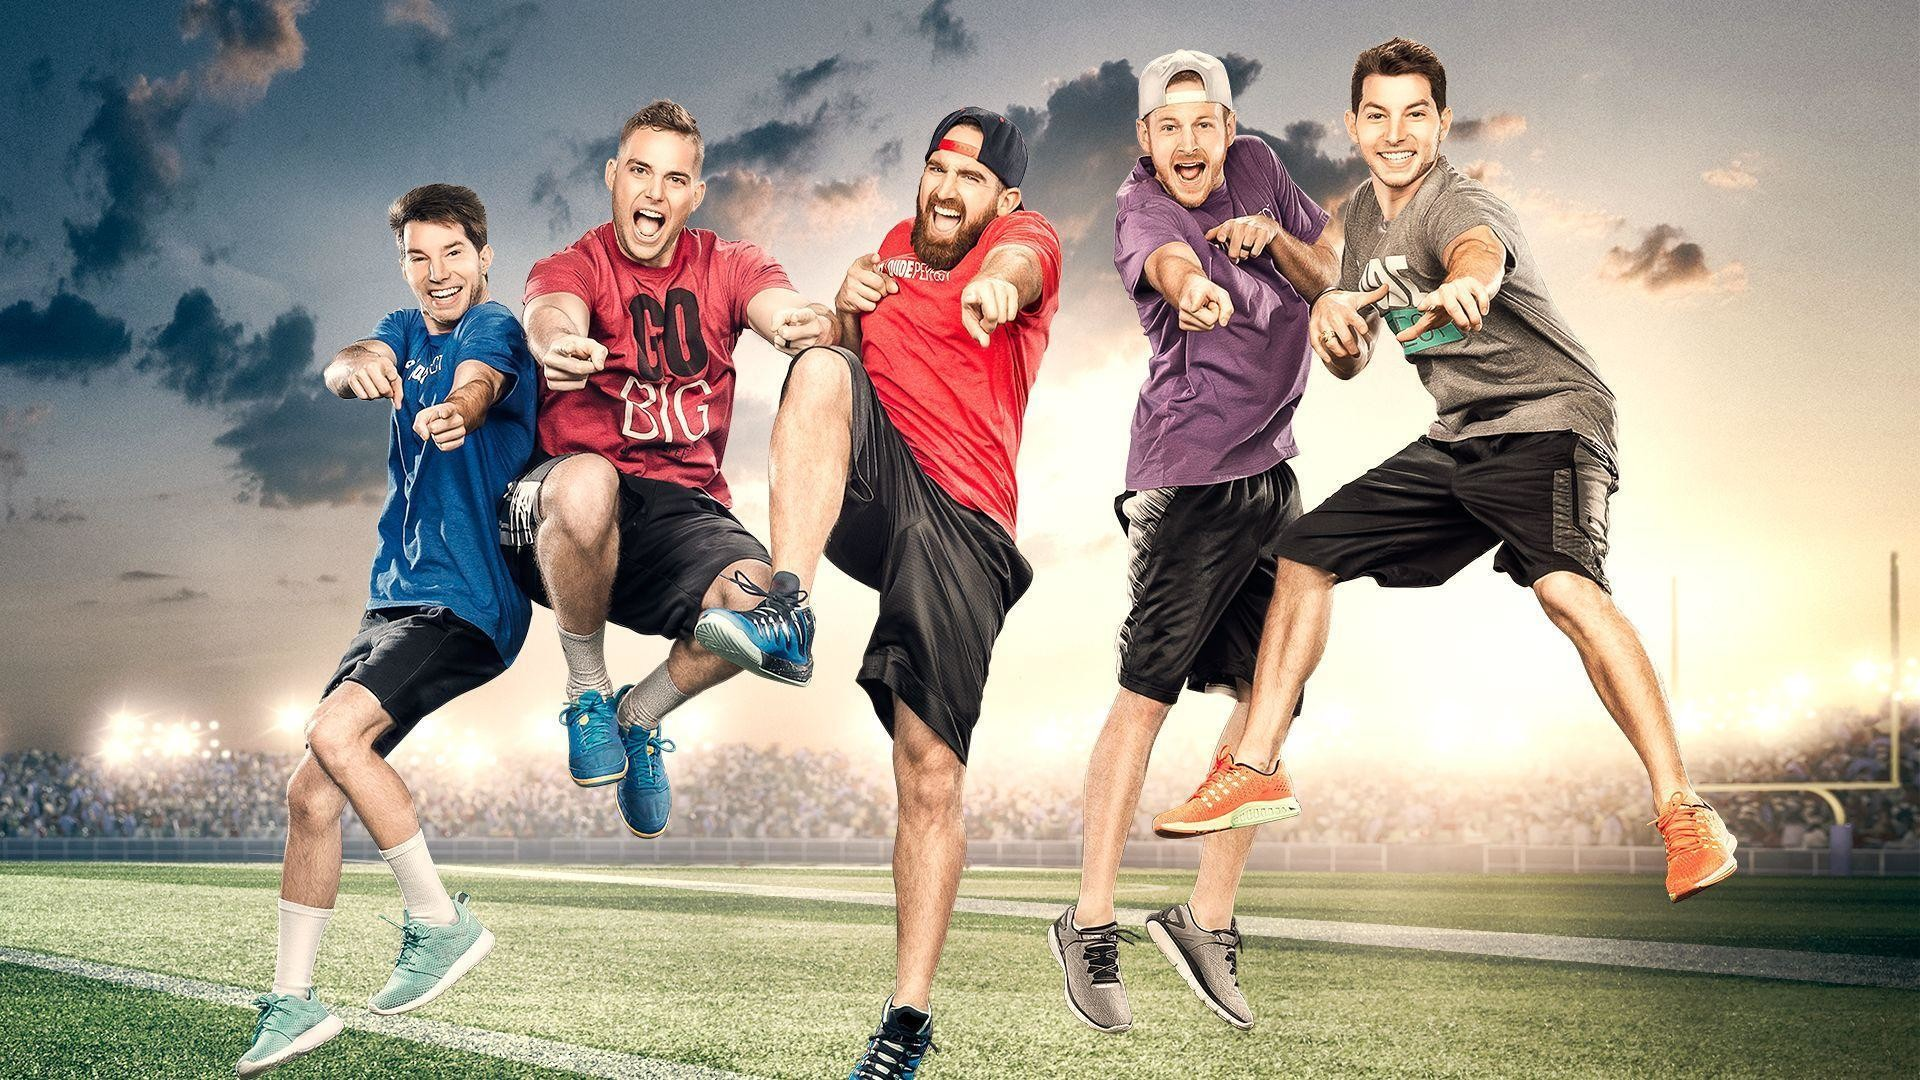 1920x1080 Dude Perfect - ClipartFest | Dude Perfect, Dude Perfect Store, and .